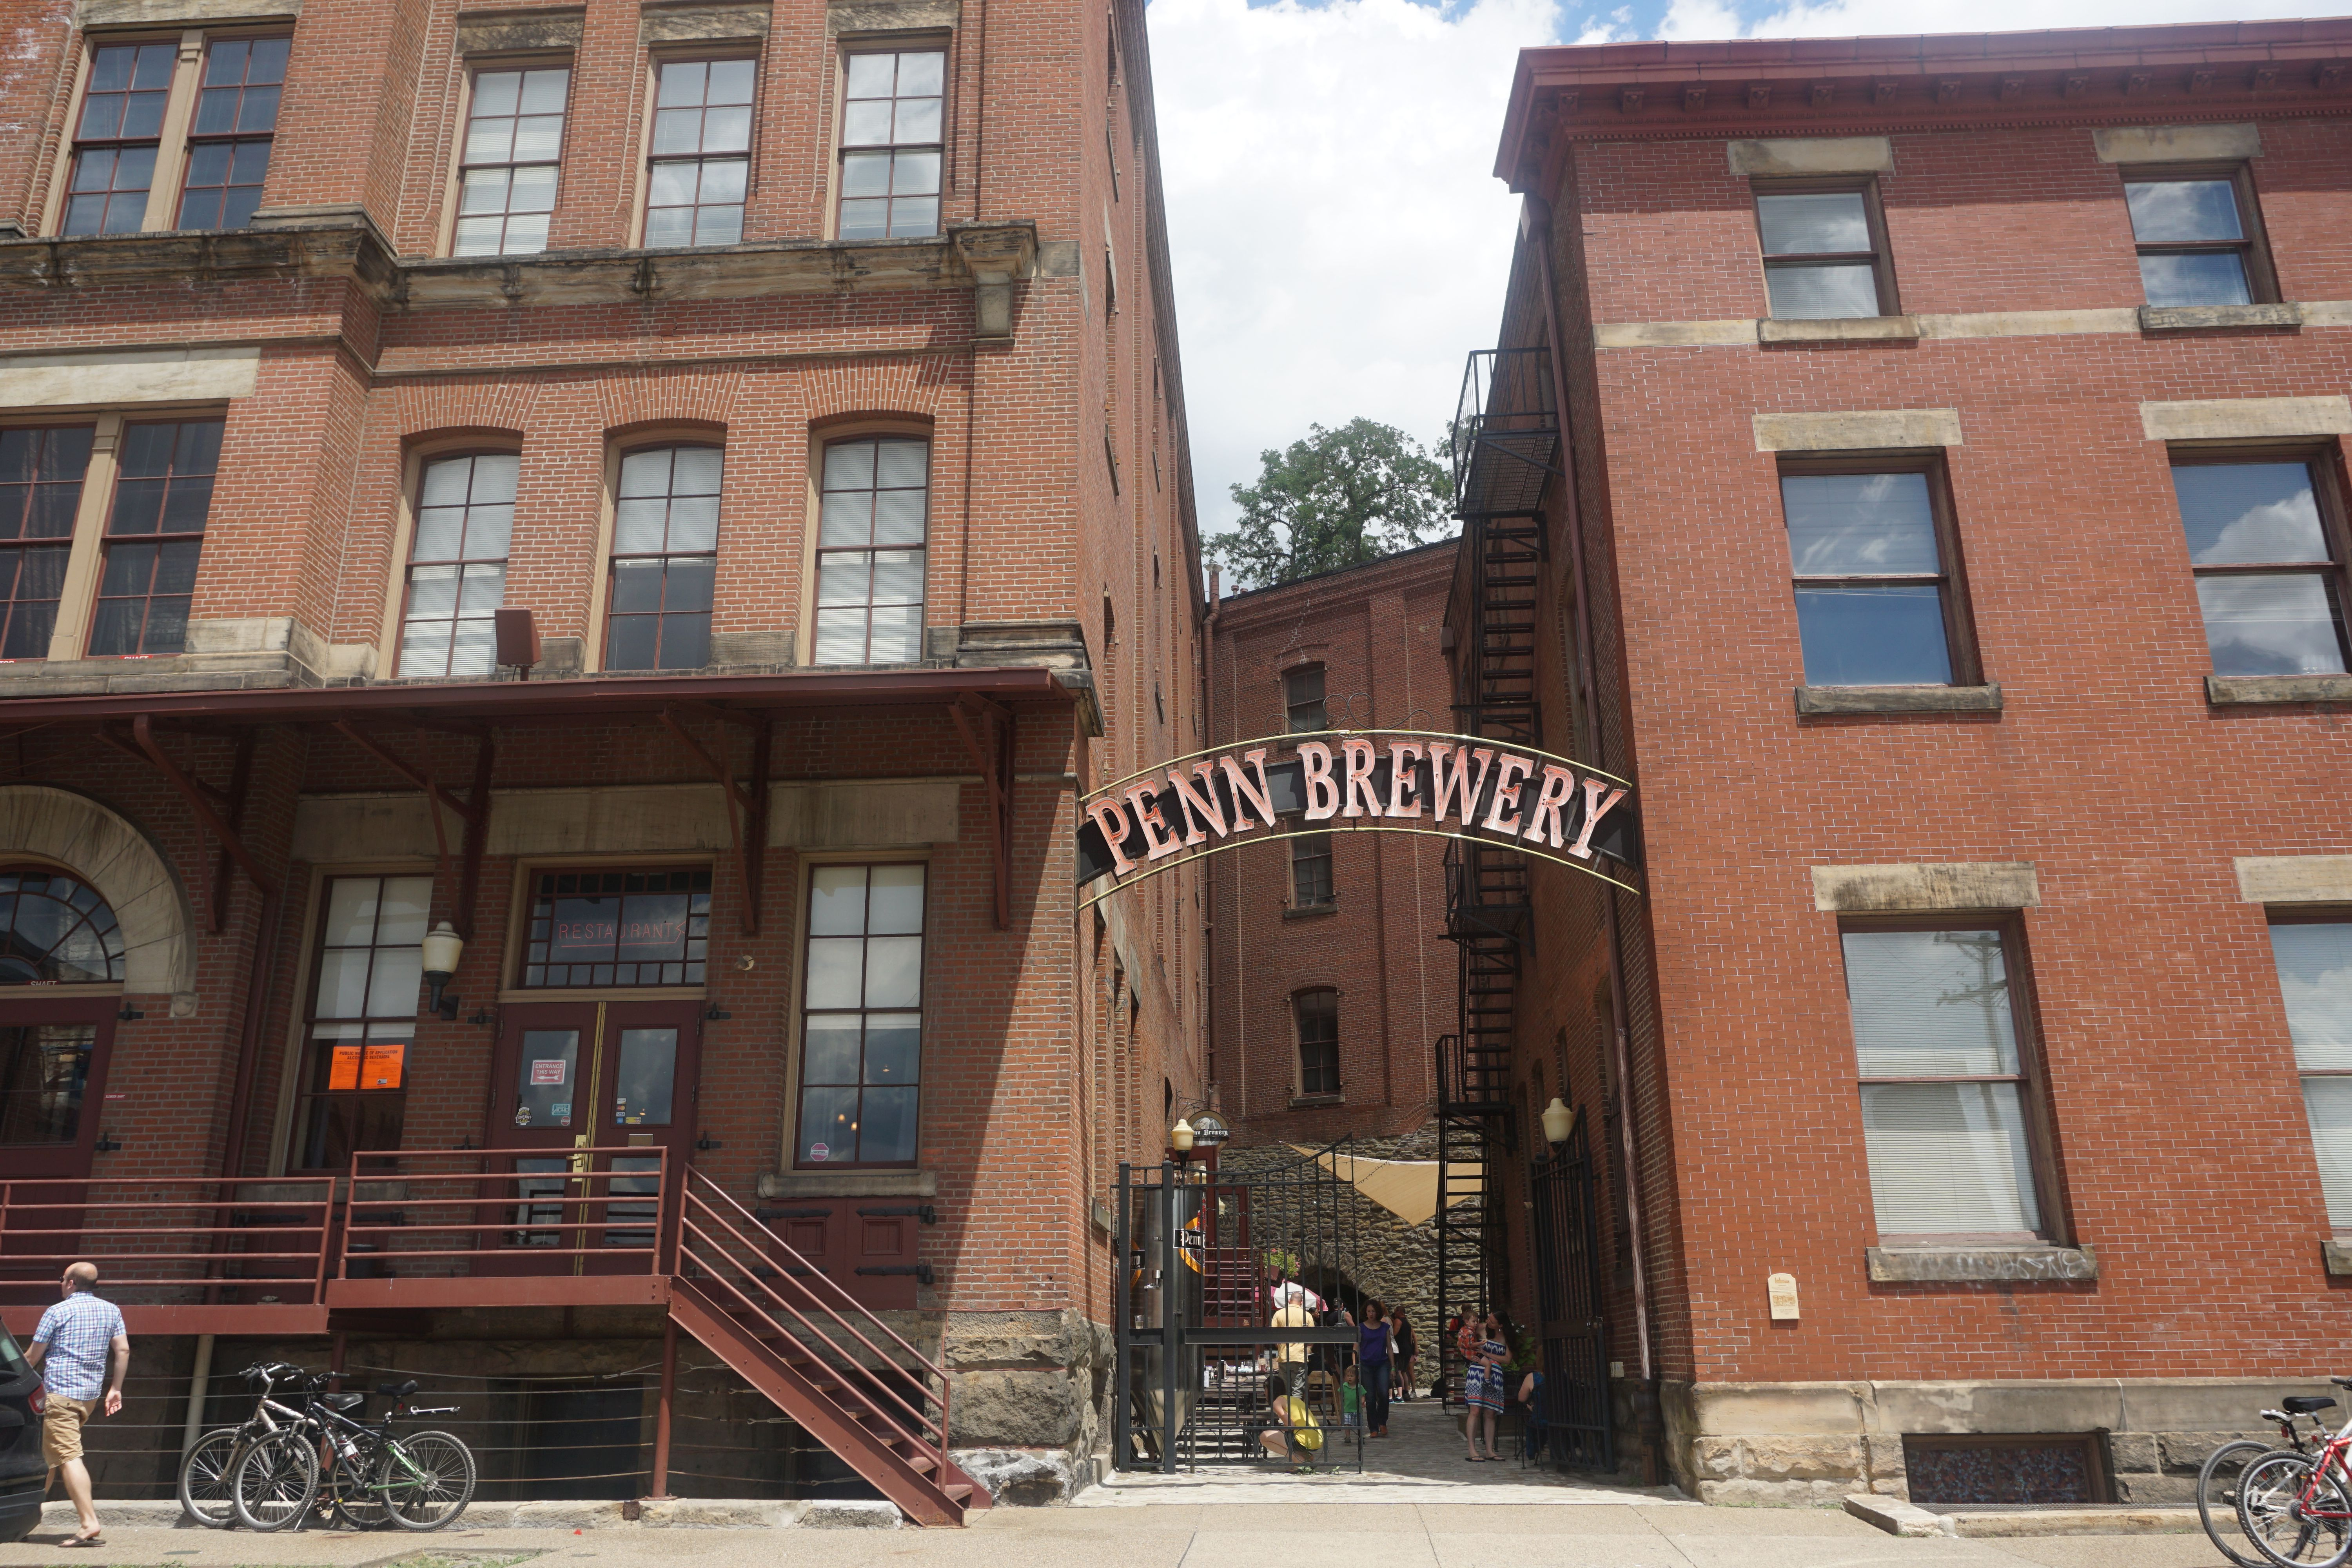 Penn Brewery, a landmark in Troy Hill. Photo by TC